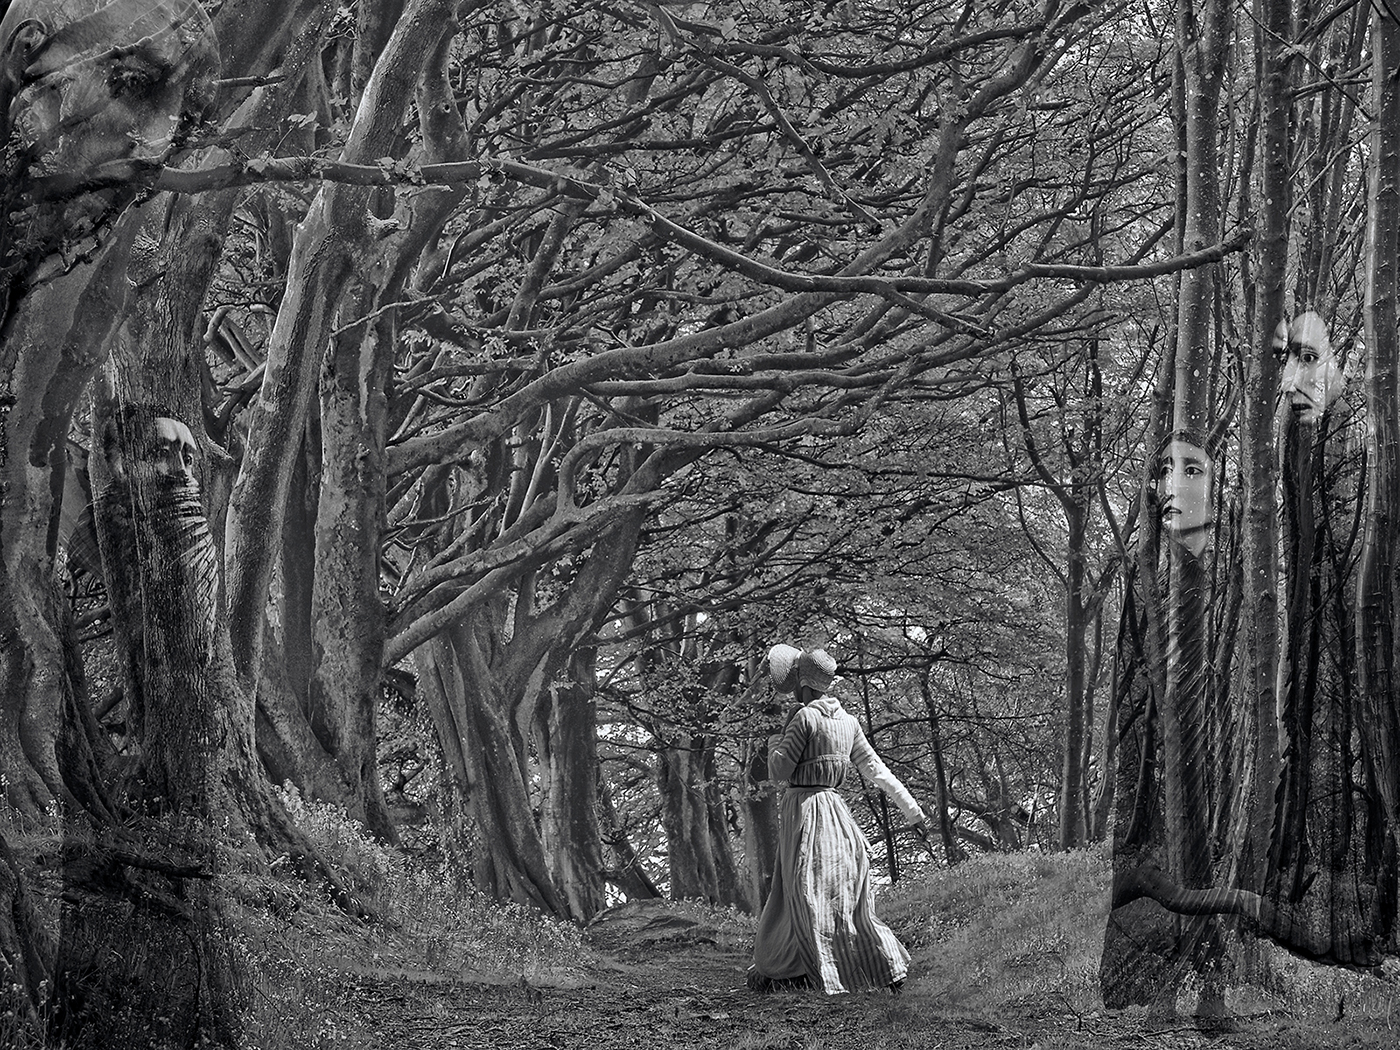 Second 'The watchers in the wood' by Tony Oliver